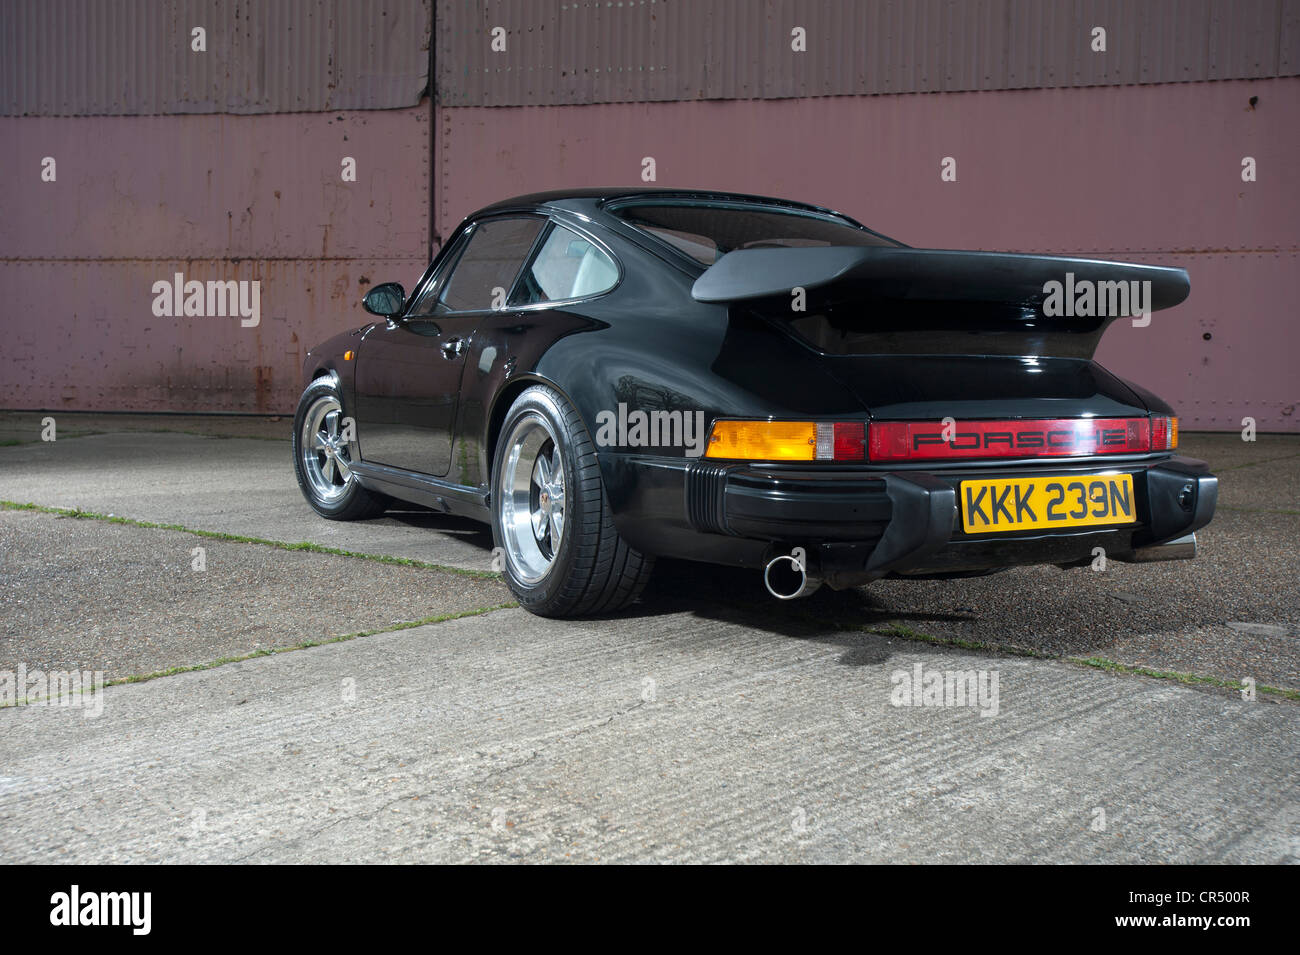 Porsche 911 German rear engine air cooled sports car - Stock Image